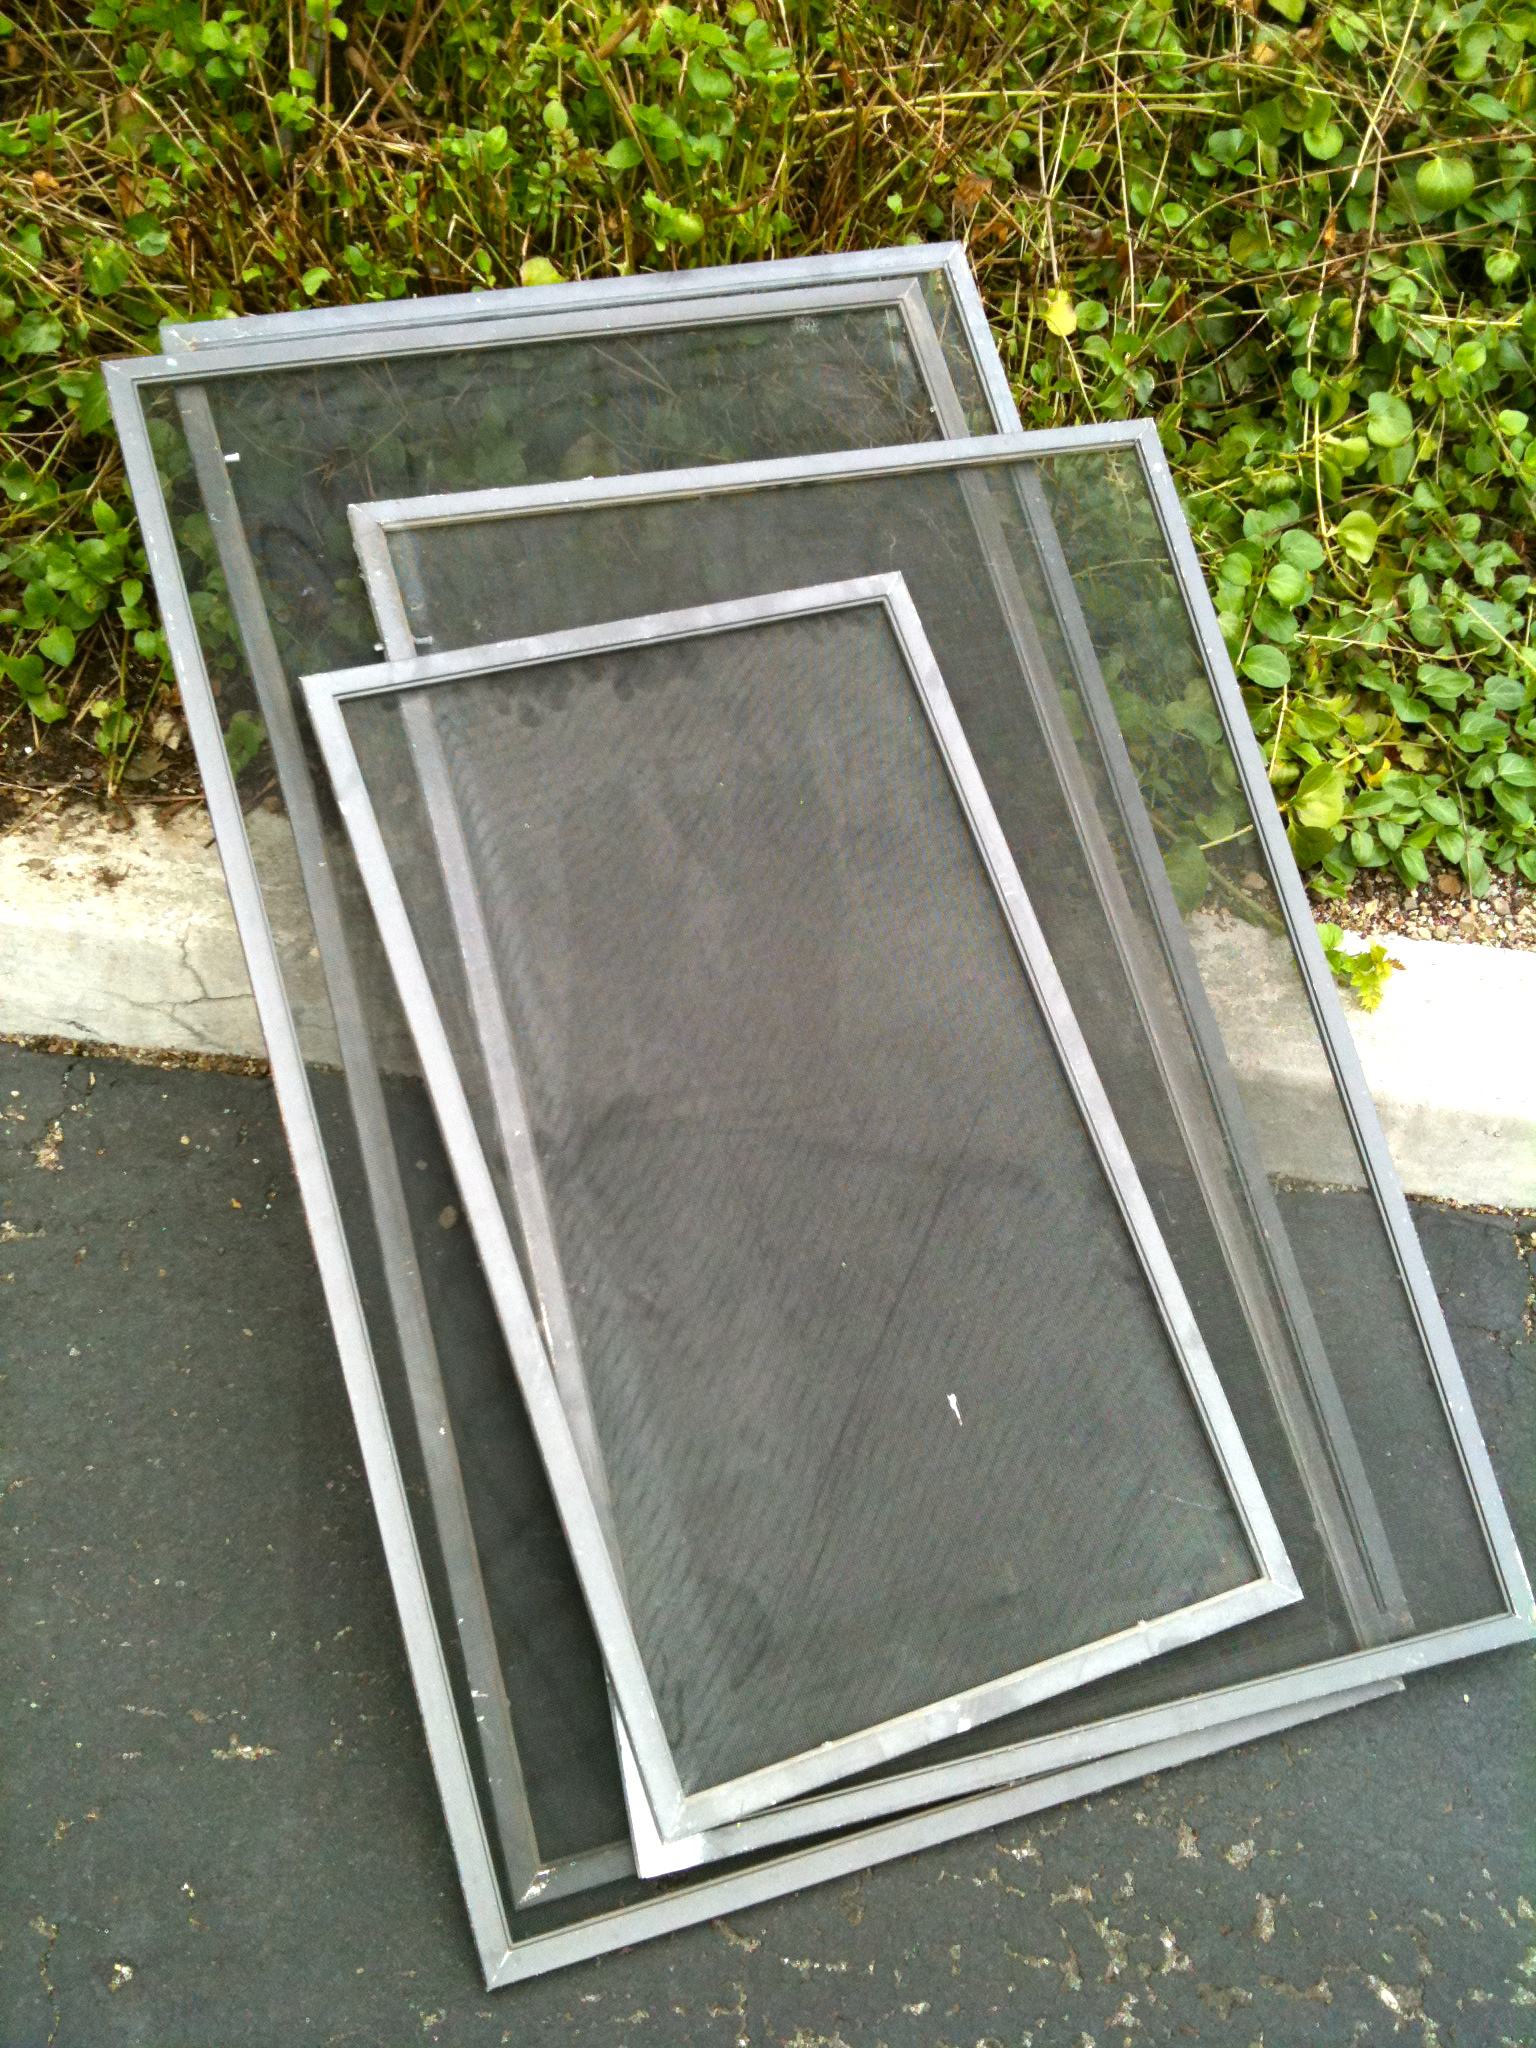 Le Meilleur Beat The Rush On Window Screen Repair Replacement At Ce Mois Ci